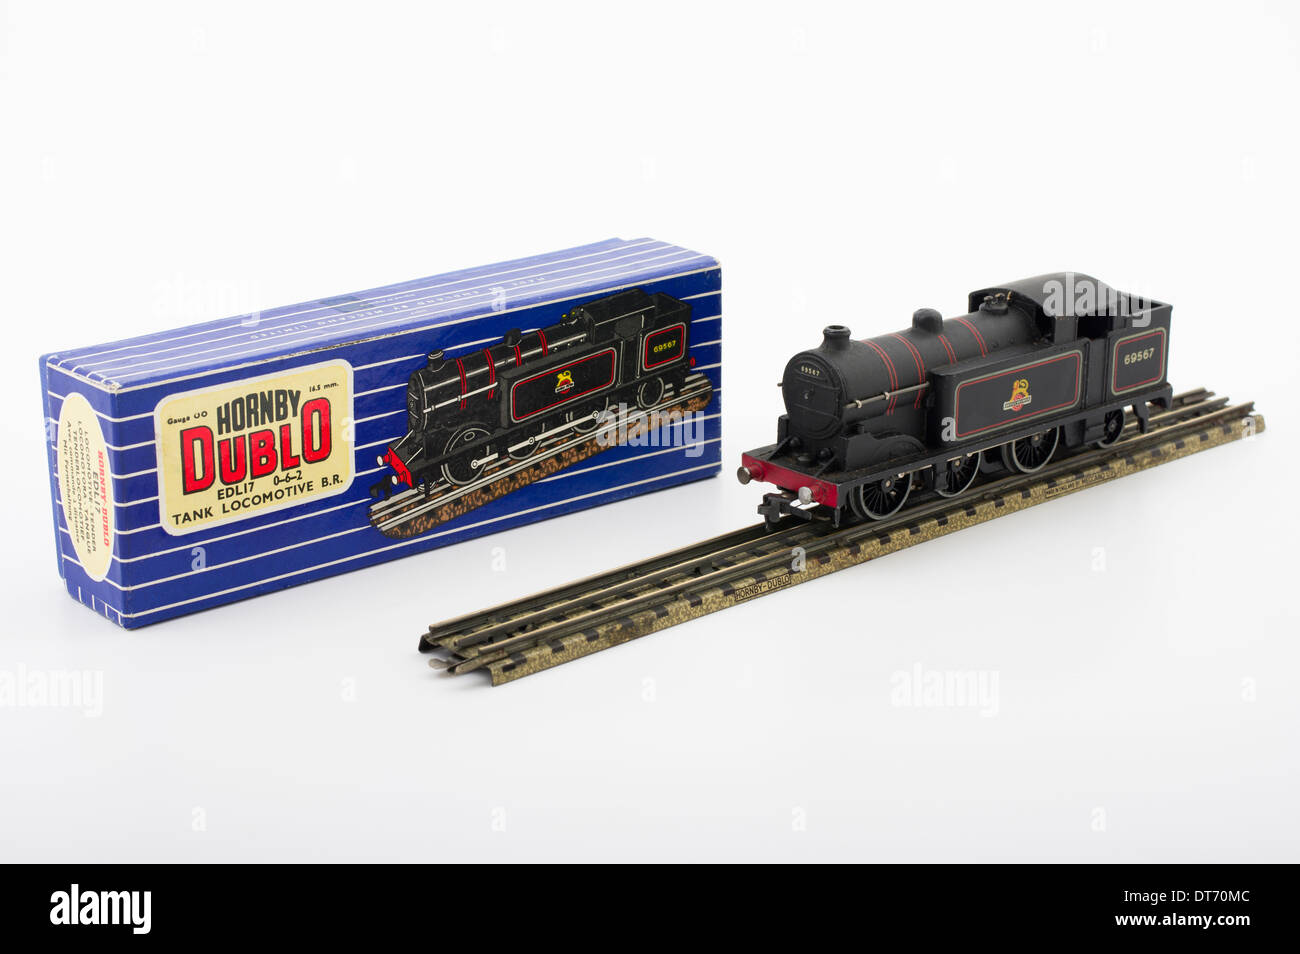 Hornby Dublo EDL17 Tank Locomotive Train Classic Brtish Children's Toy - Stock Image